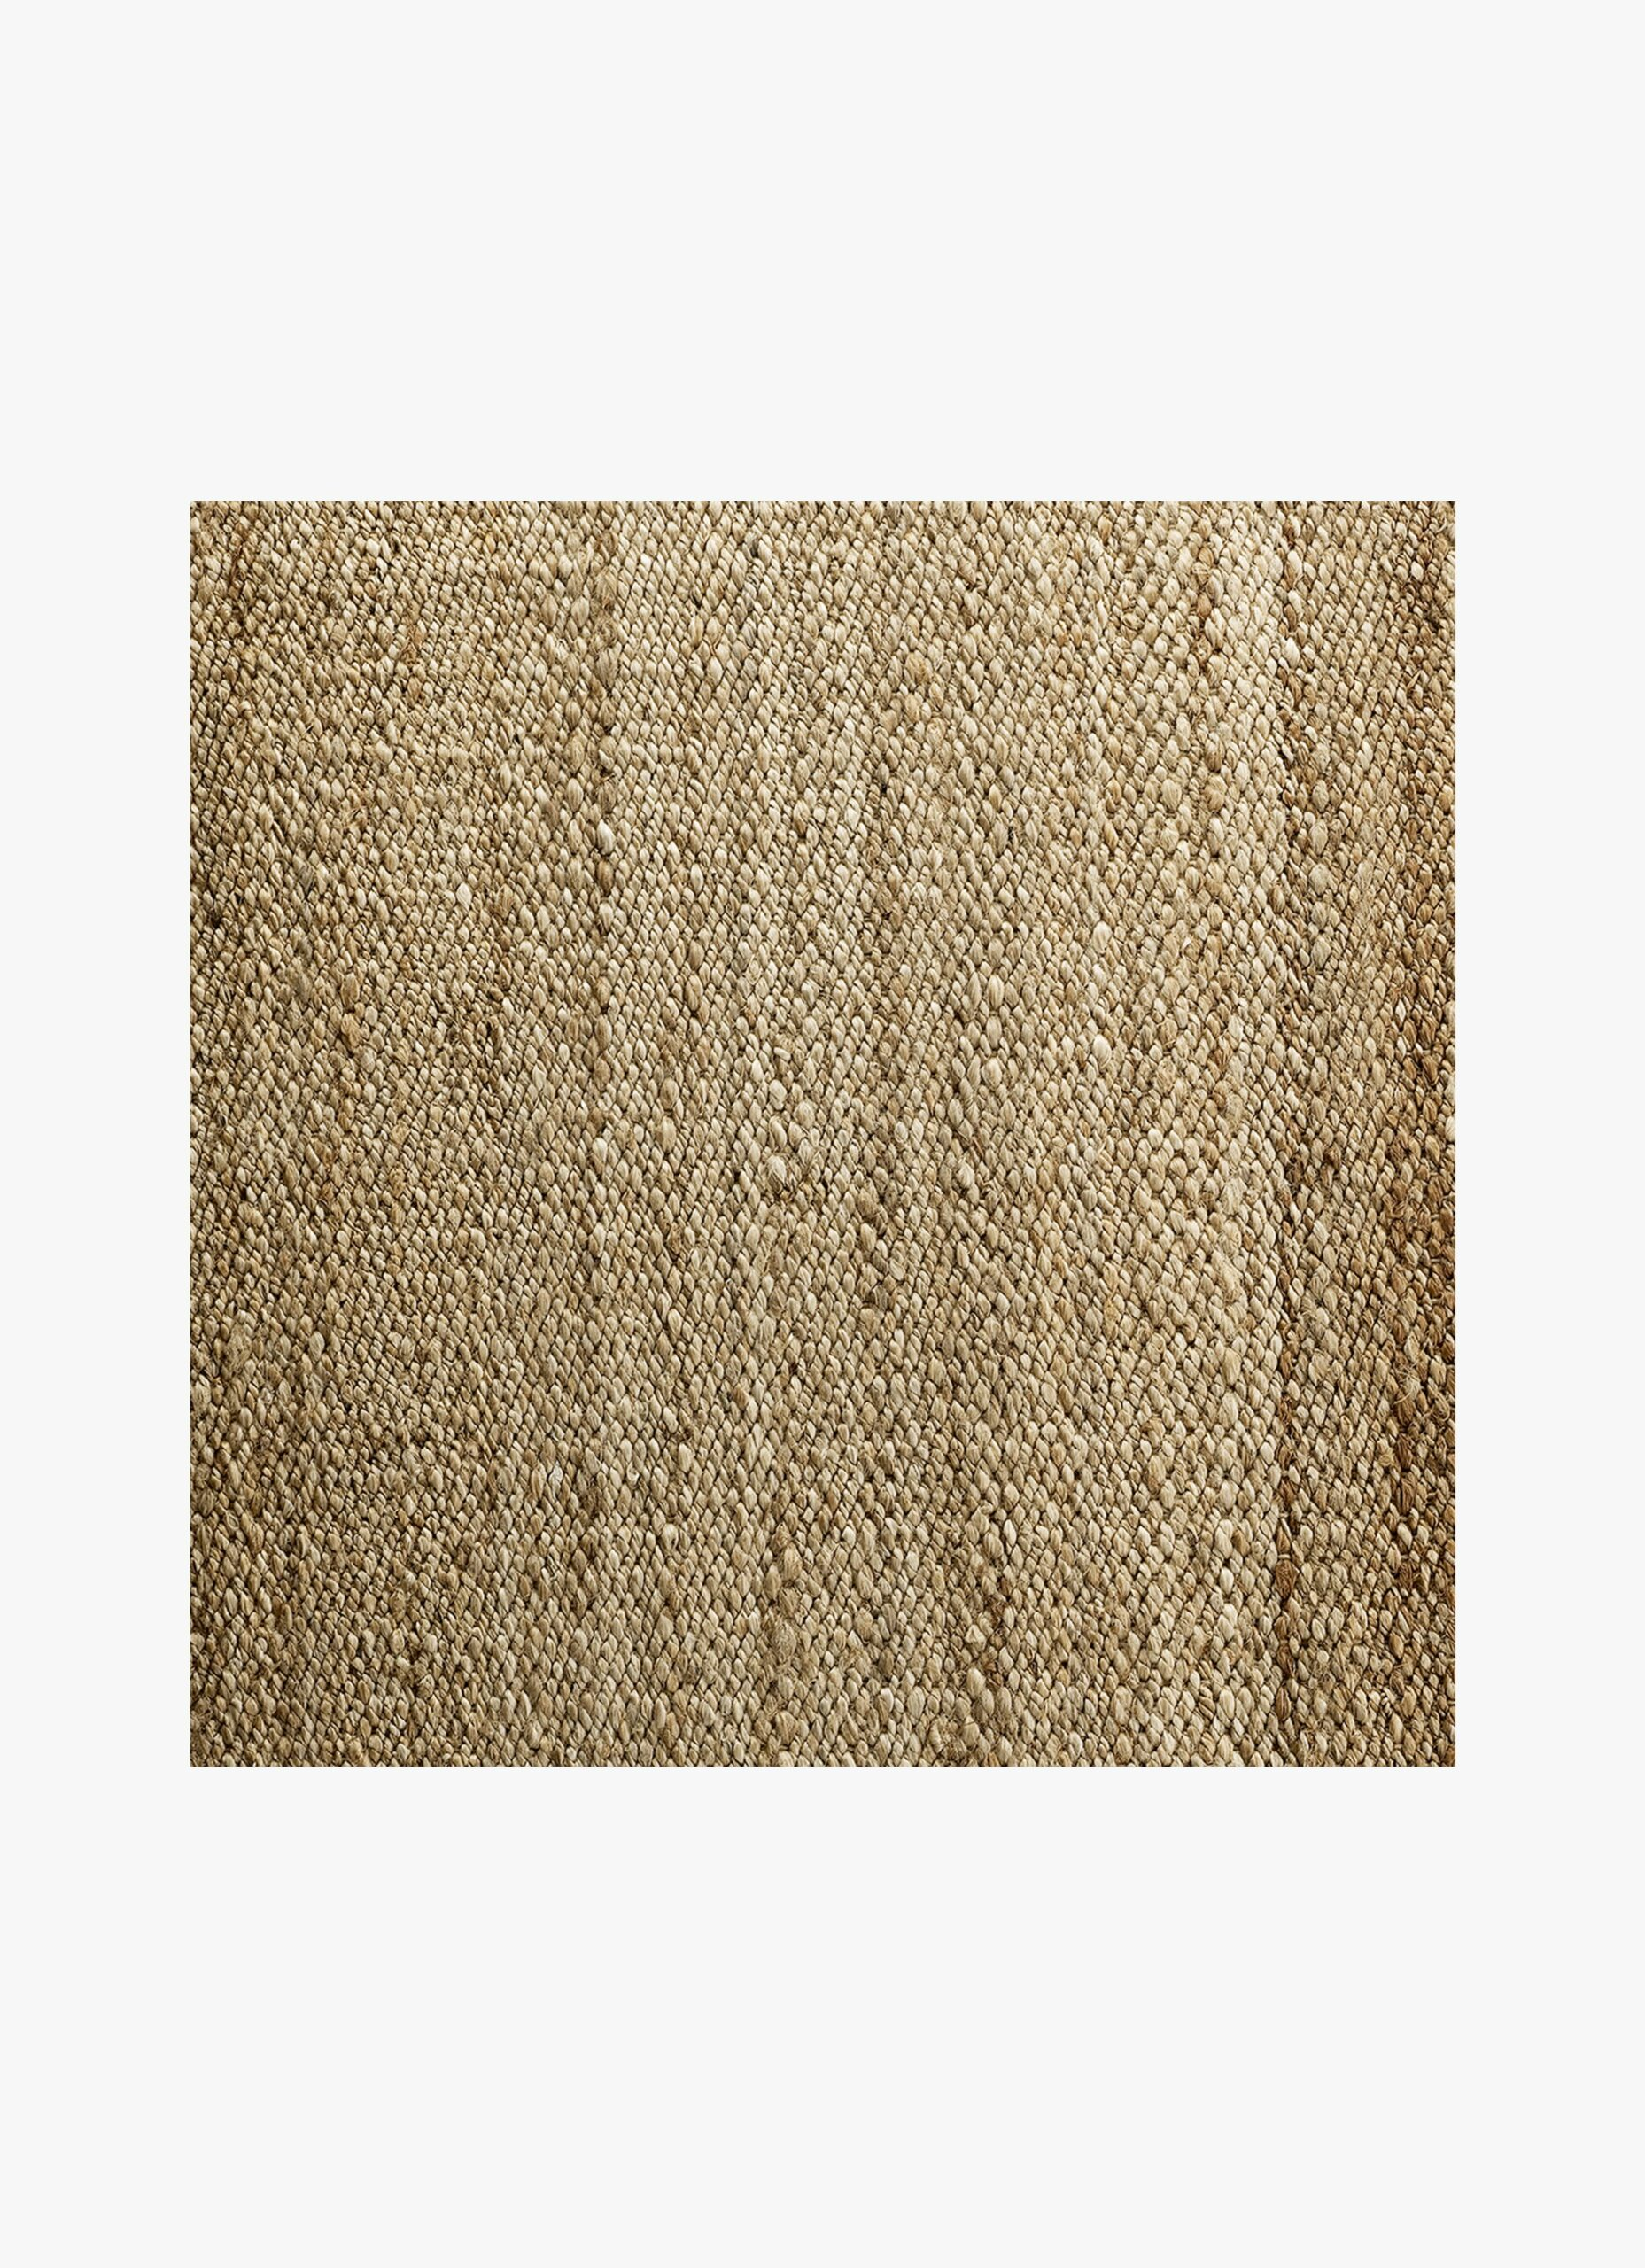 Handwoven Jute Rug - natural - Made to order - dif. sizes